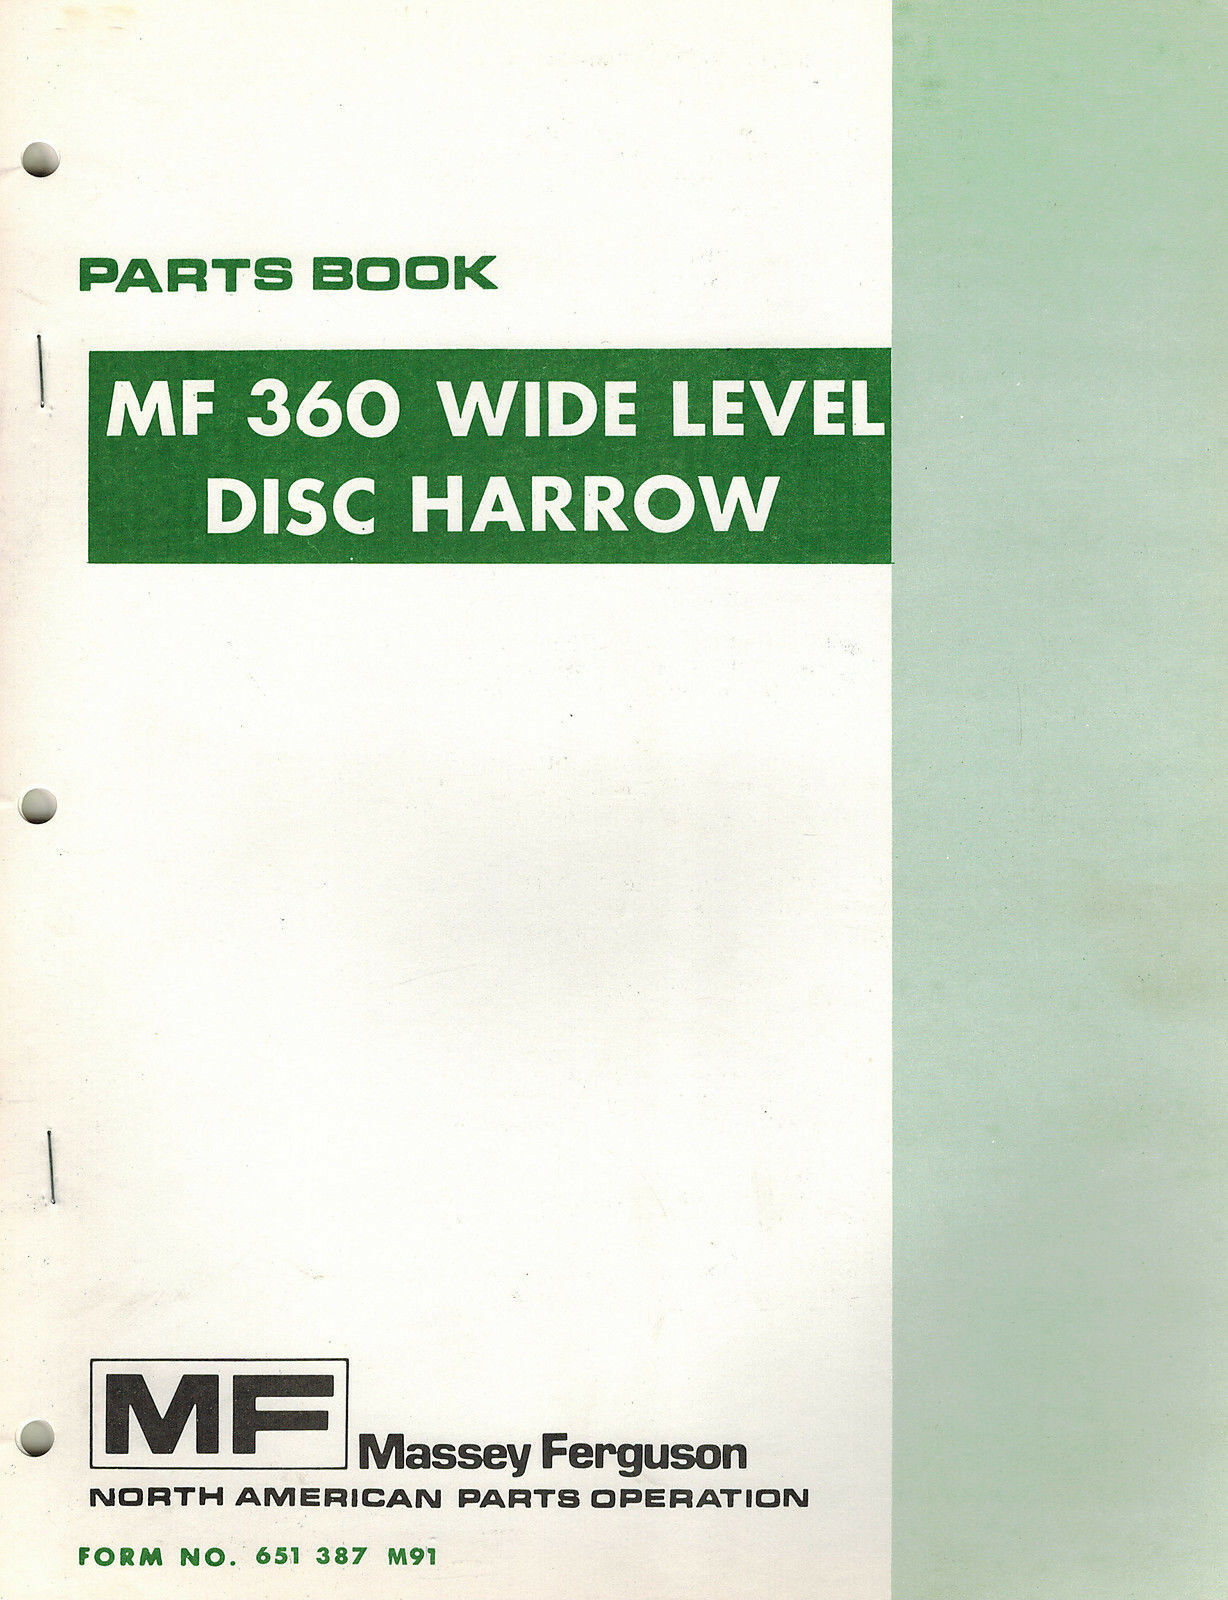 MASSEY FERGUSON MF 360 WIDE LEVEL DISC HARROW PARTS MANUAL mf 651 387 M91 1  of 6Only 1 available ...